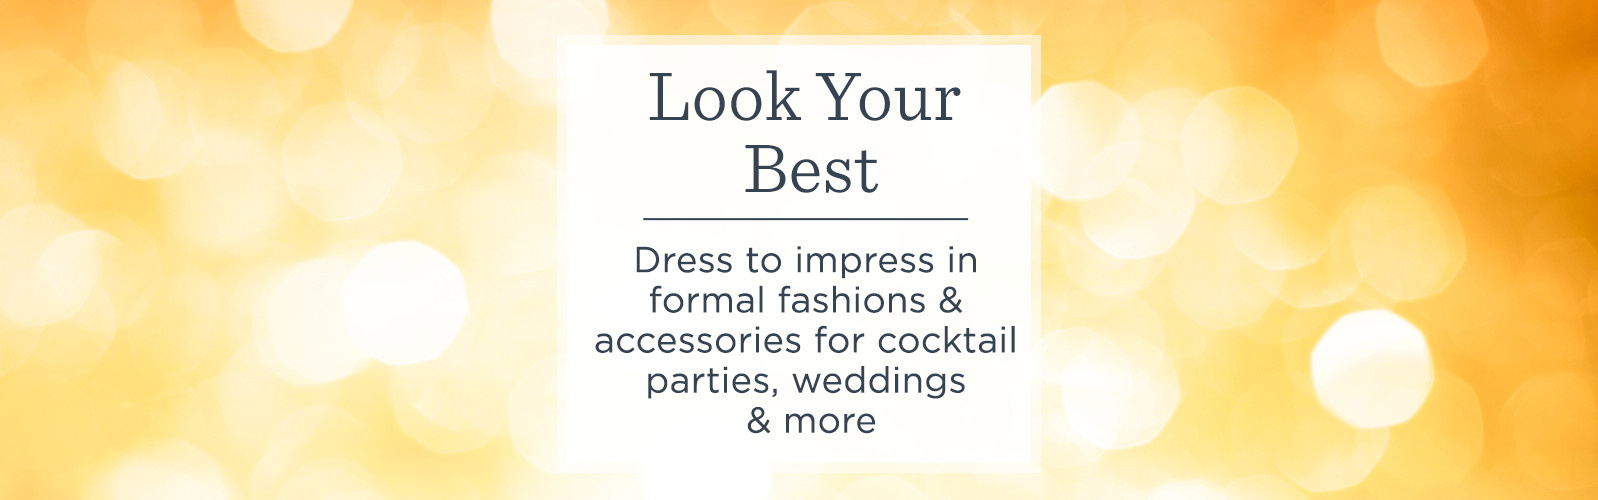 Look Your Best - Dress to impress in formal fashions & accessories for cocktail parties, weddings & more